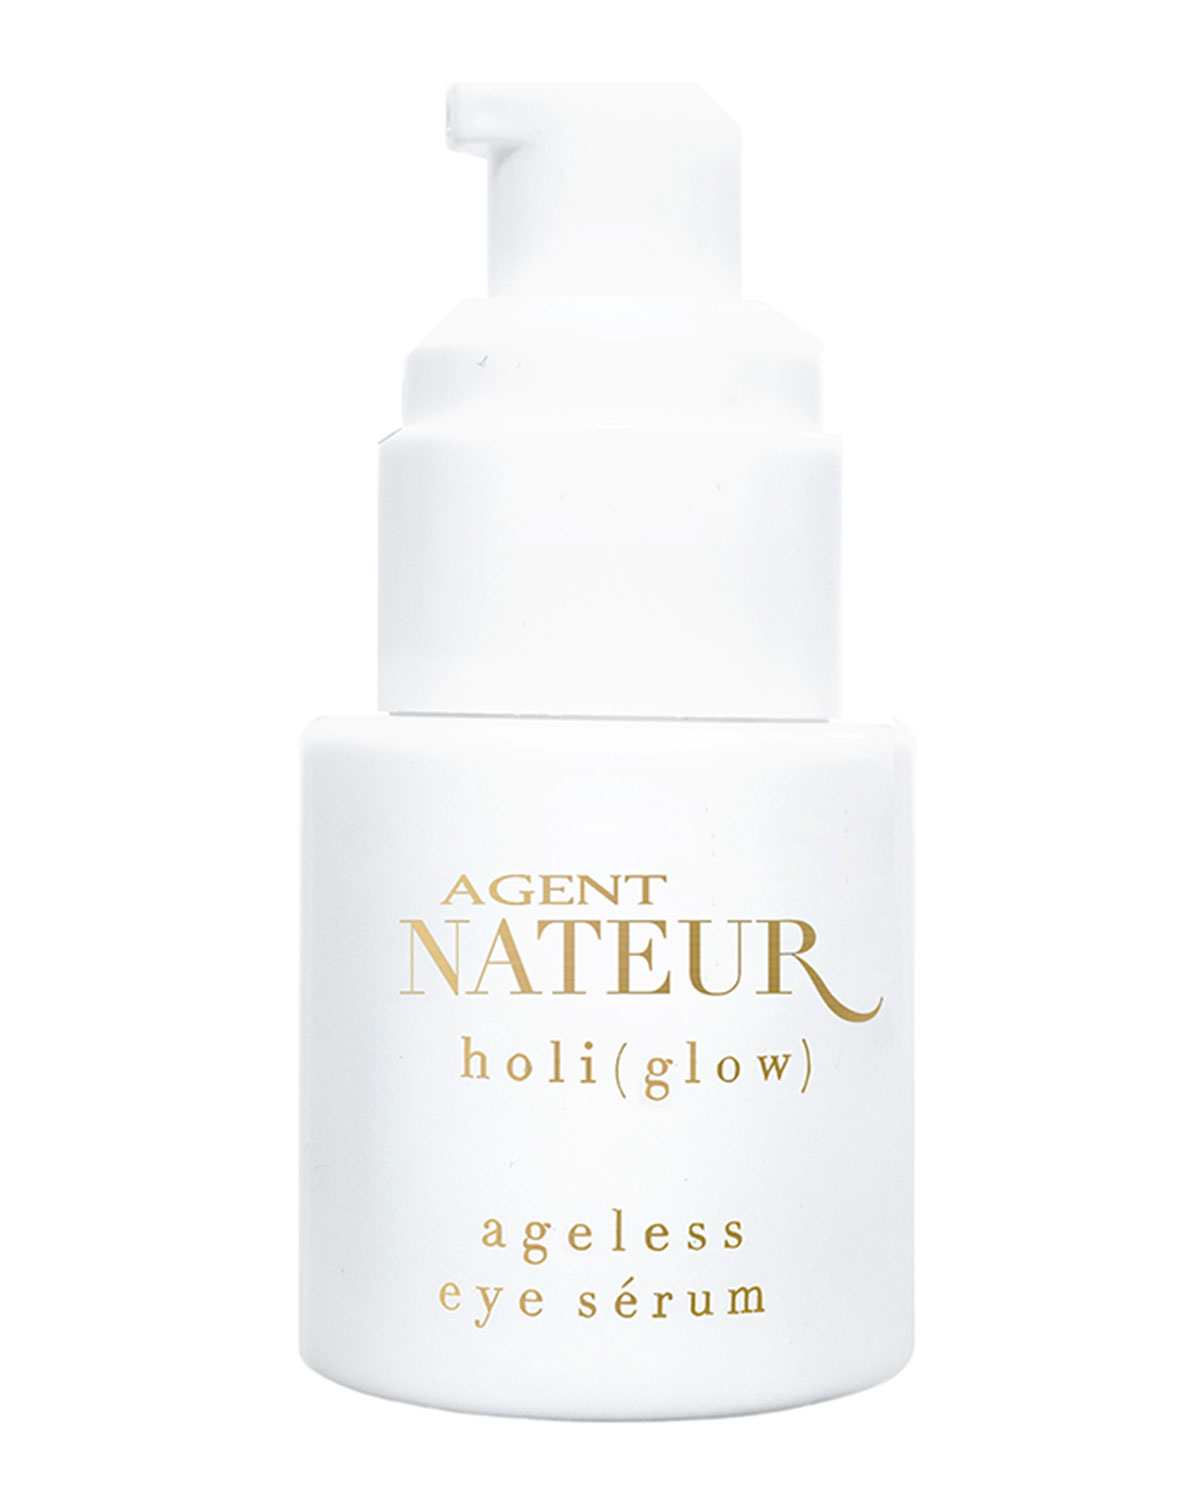 Agent Nateur Holi Glow Ageless Eye Serum